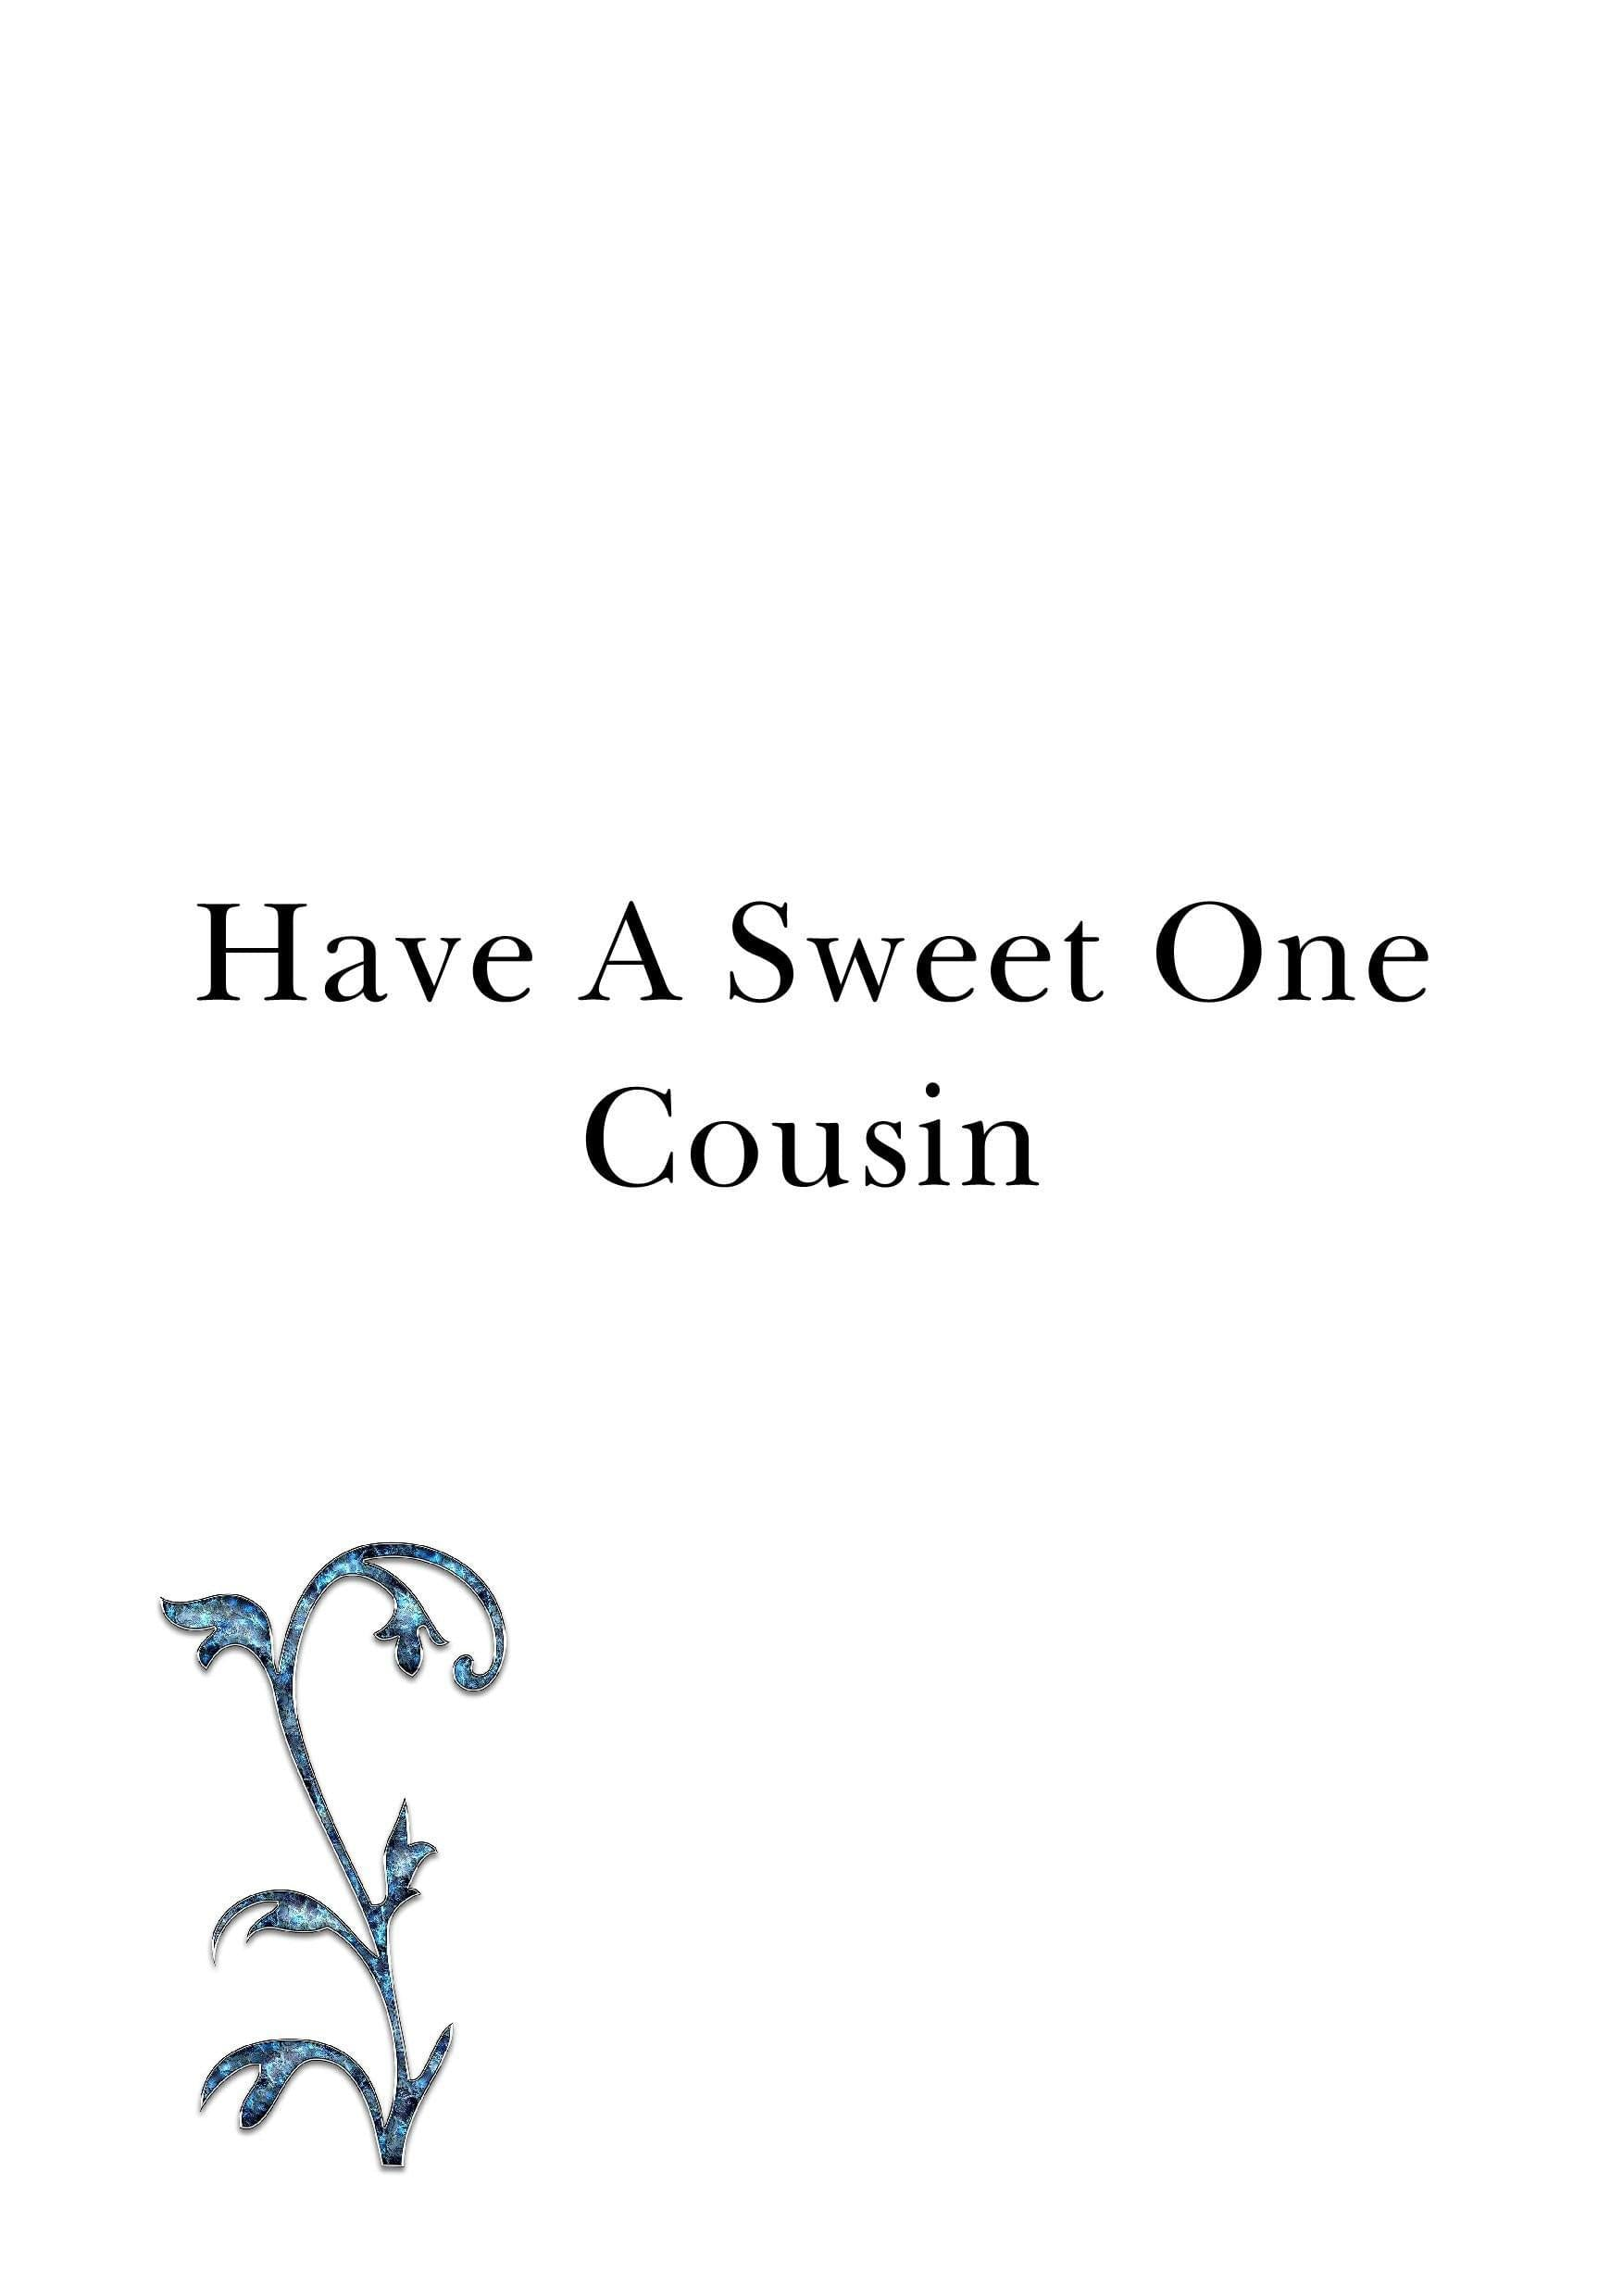 To My Sweet Cousin - Divine Poetry